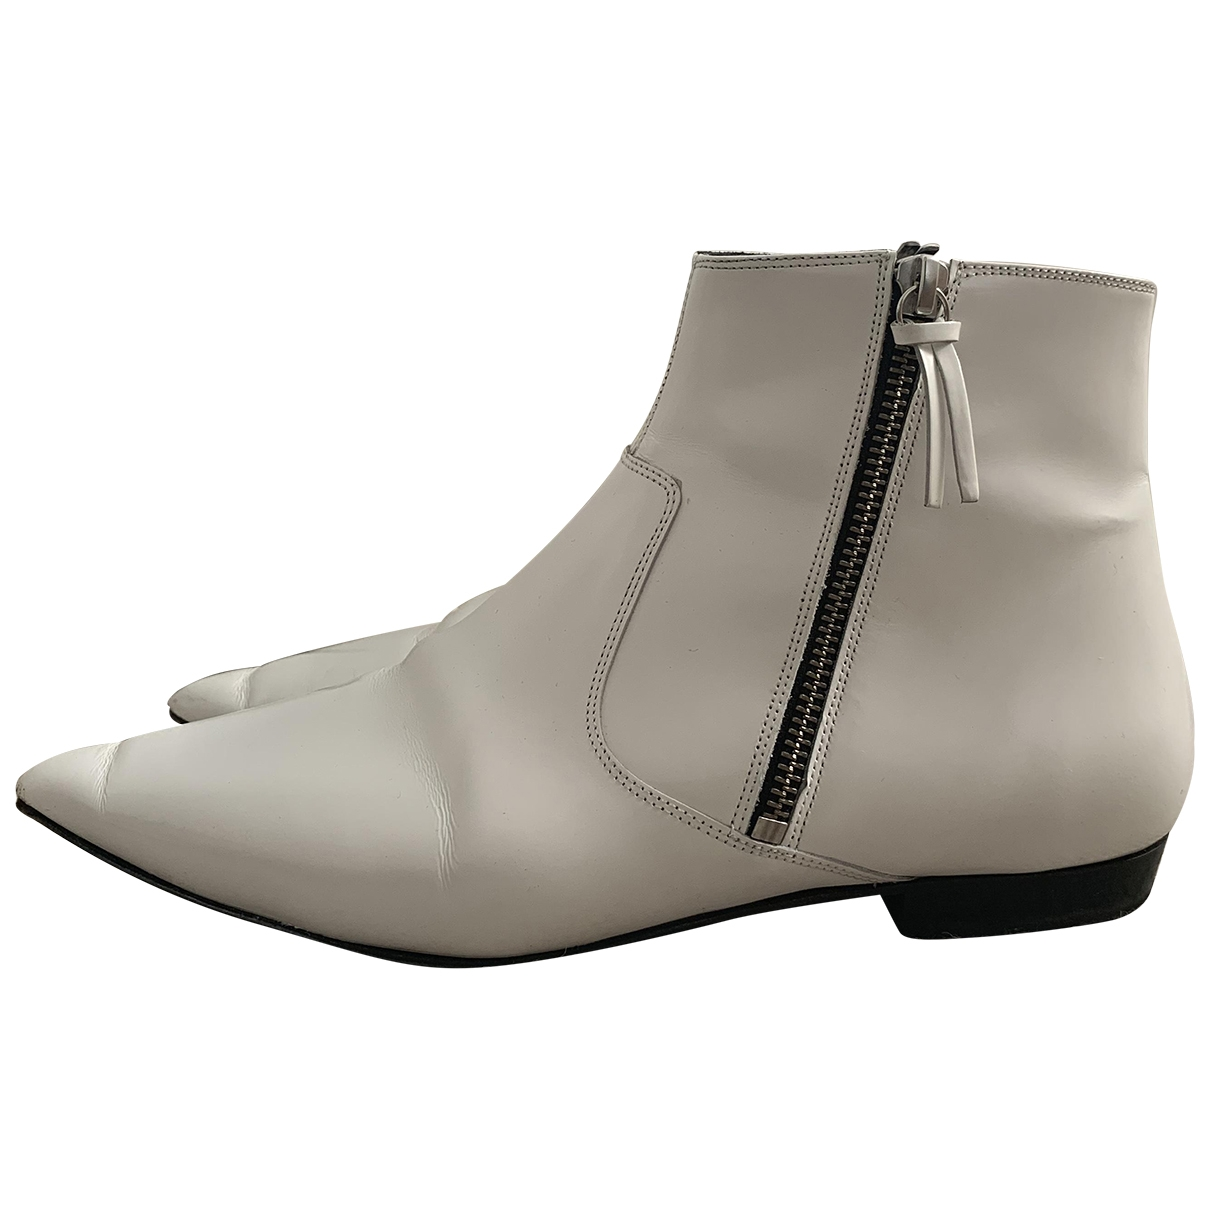 Isabel Marant \N White Patent leather Boots for Women 38 EU